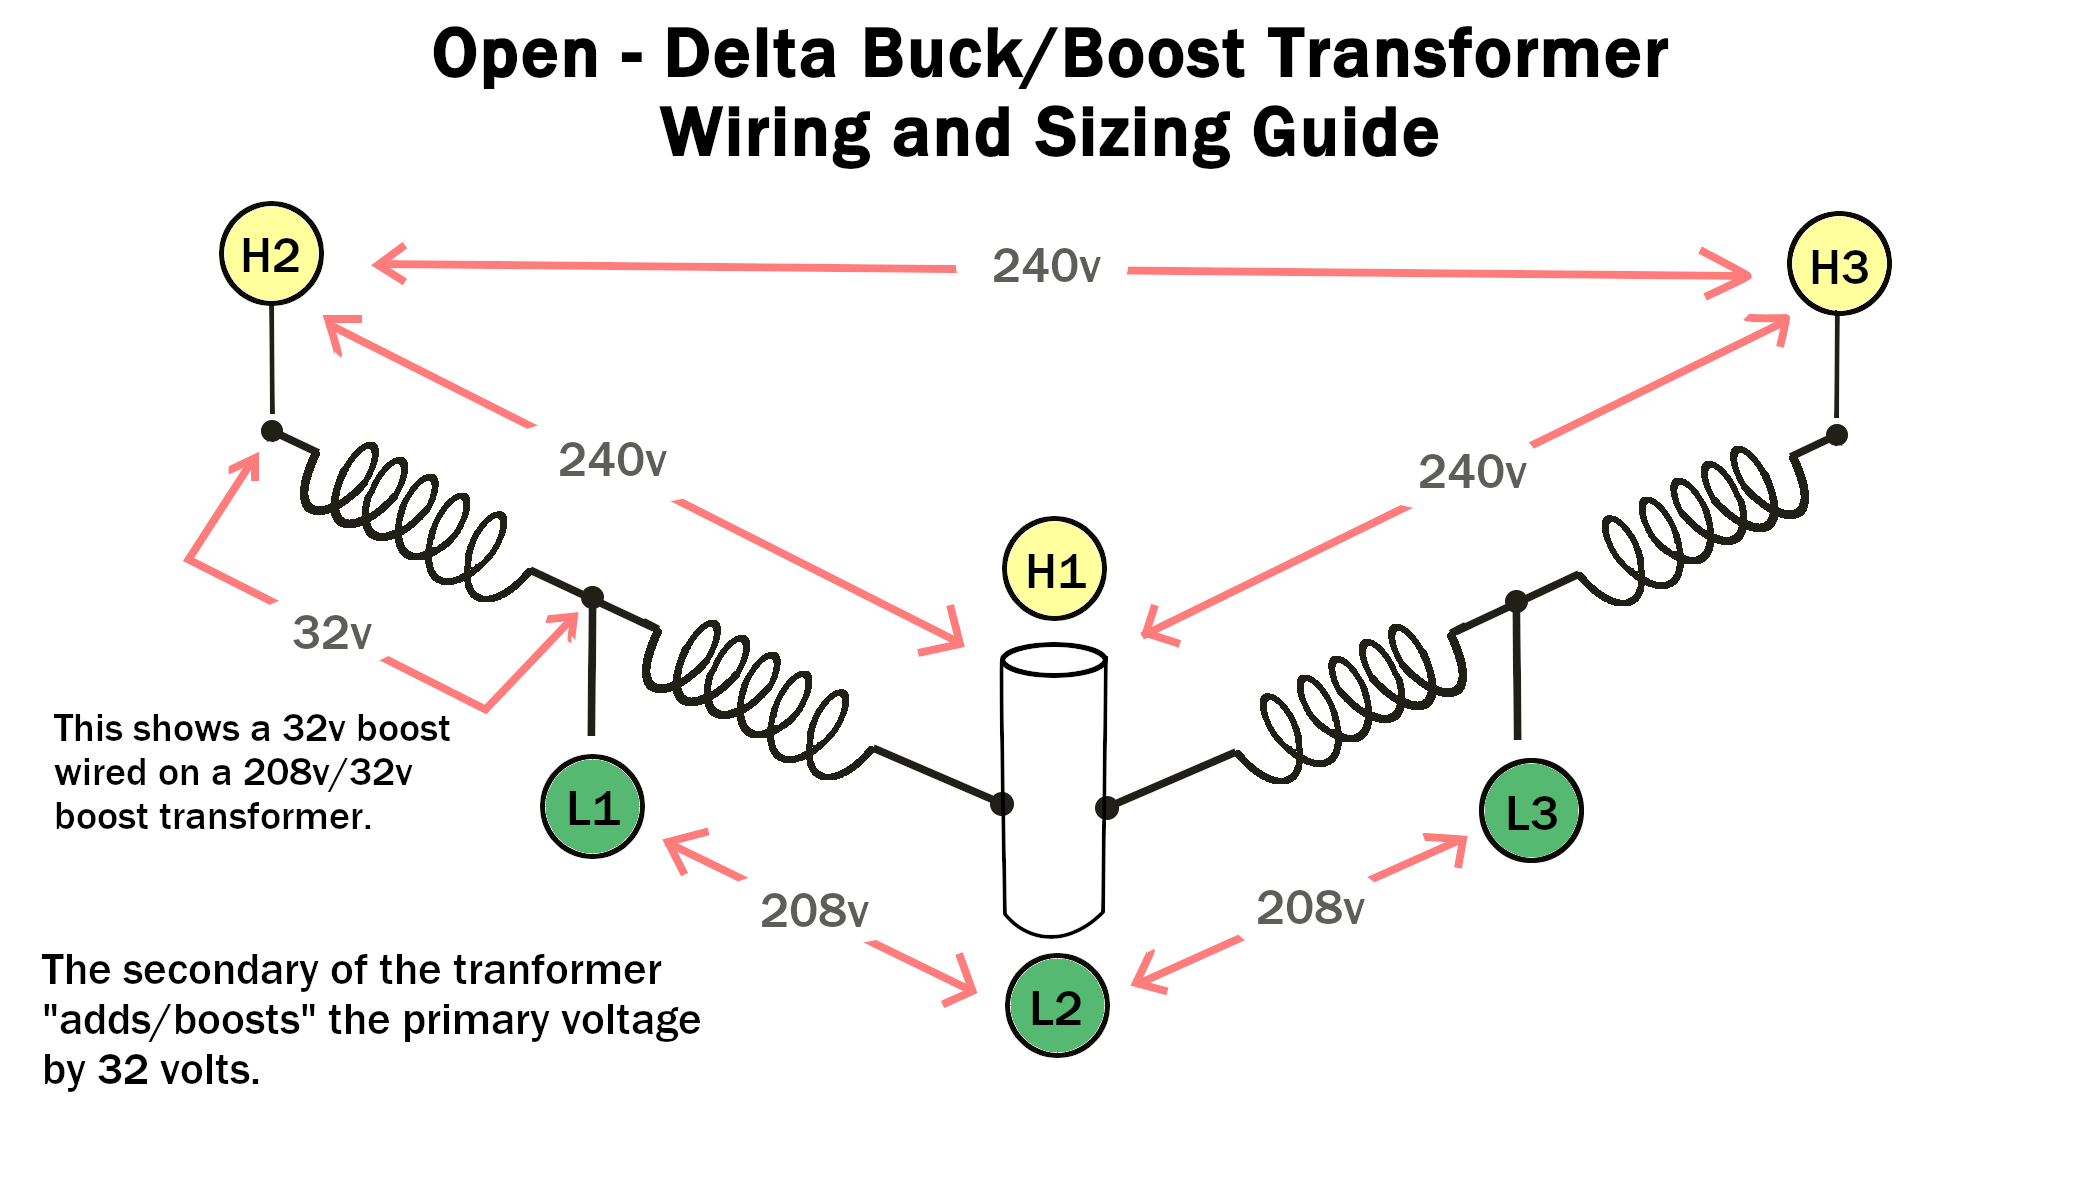 [SCHEMATICS_48DE]  Milnor Article: How do I size and wire a Buck Boost transformer | 208 Transformer Wiring Diagram |  | milnortechnicalsupport.force.com